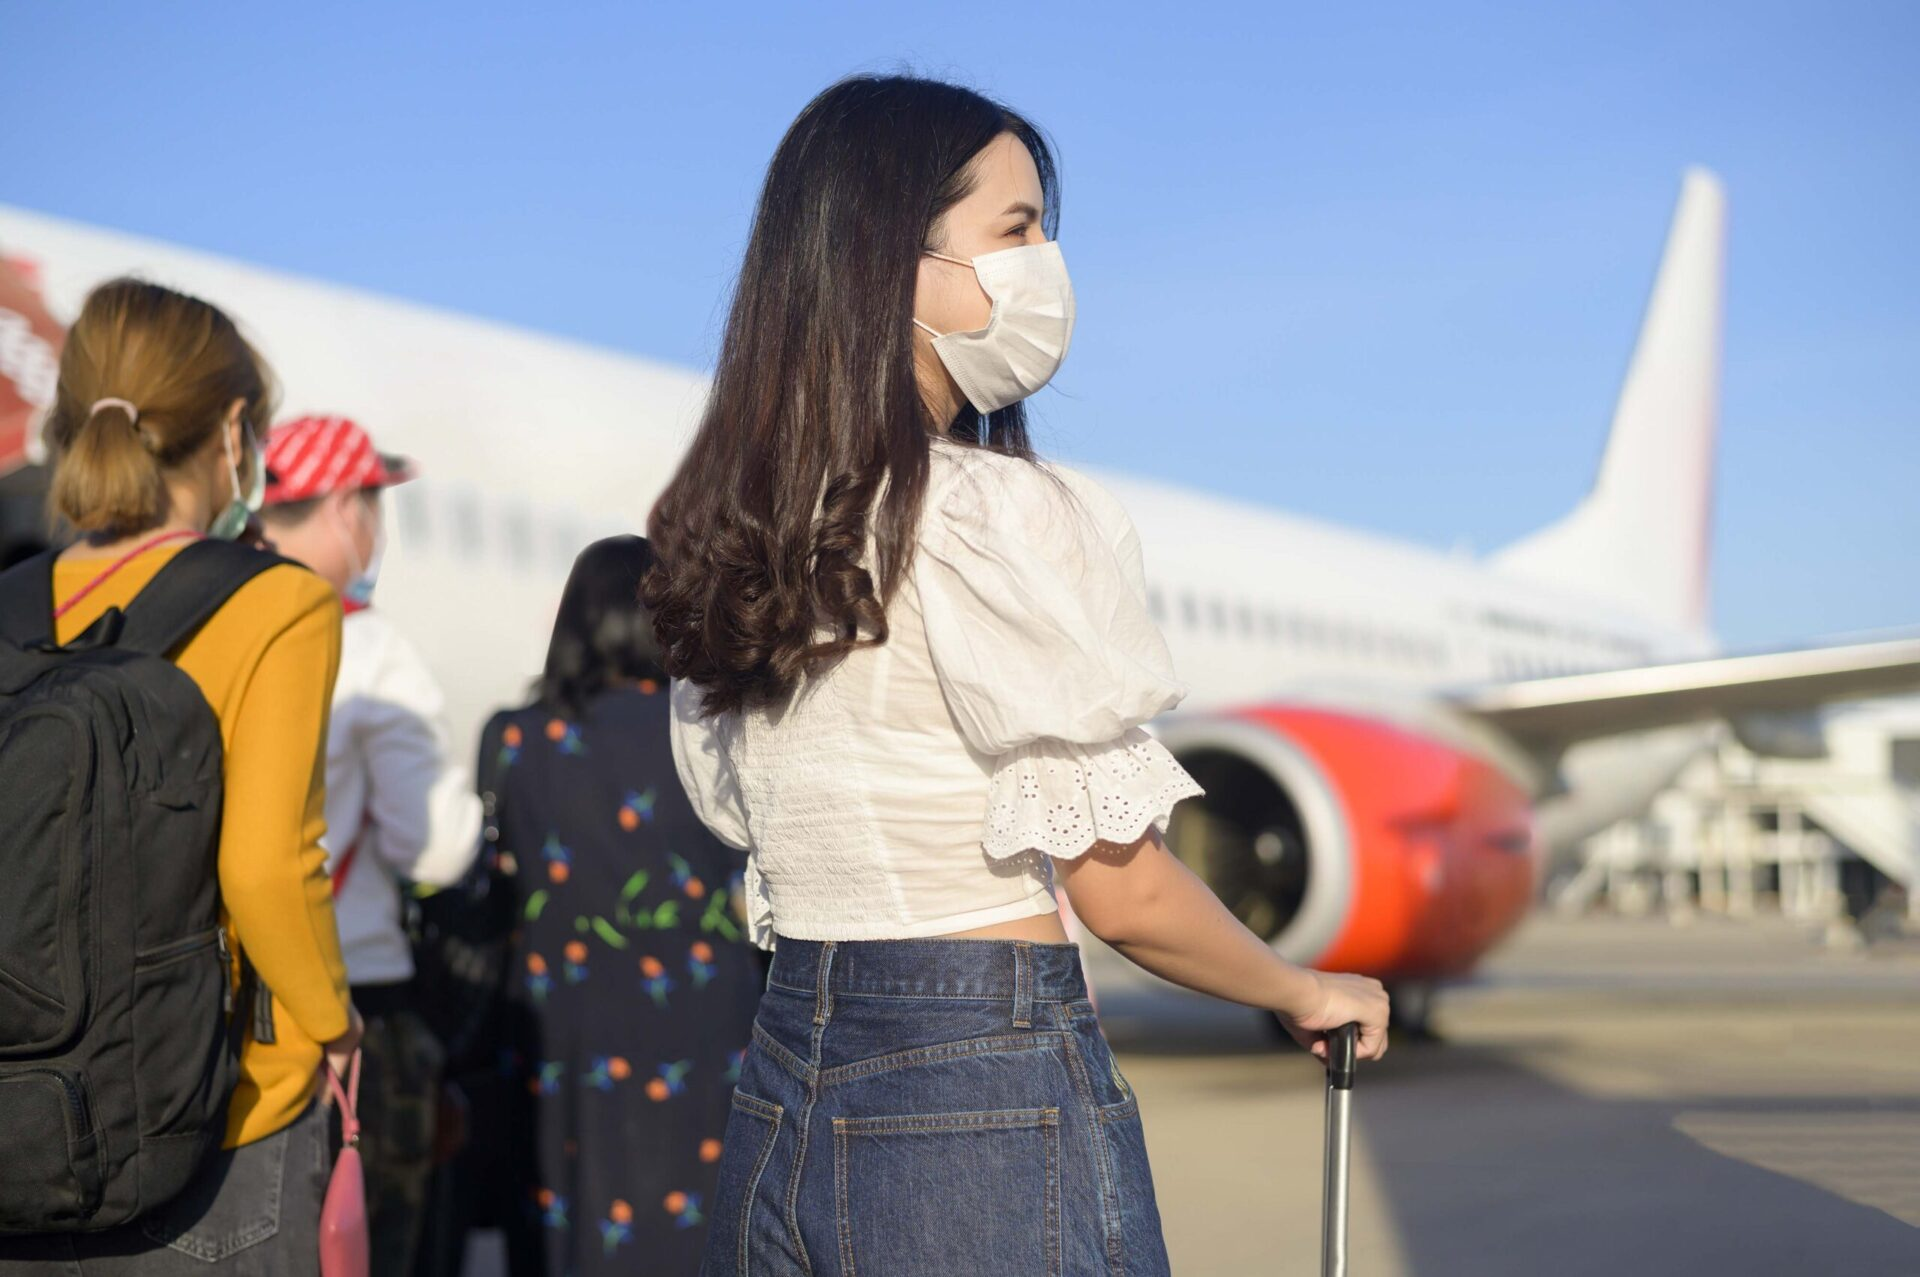 young woman getting on a plane and wearing a face mask